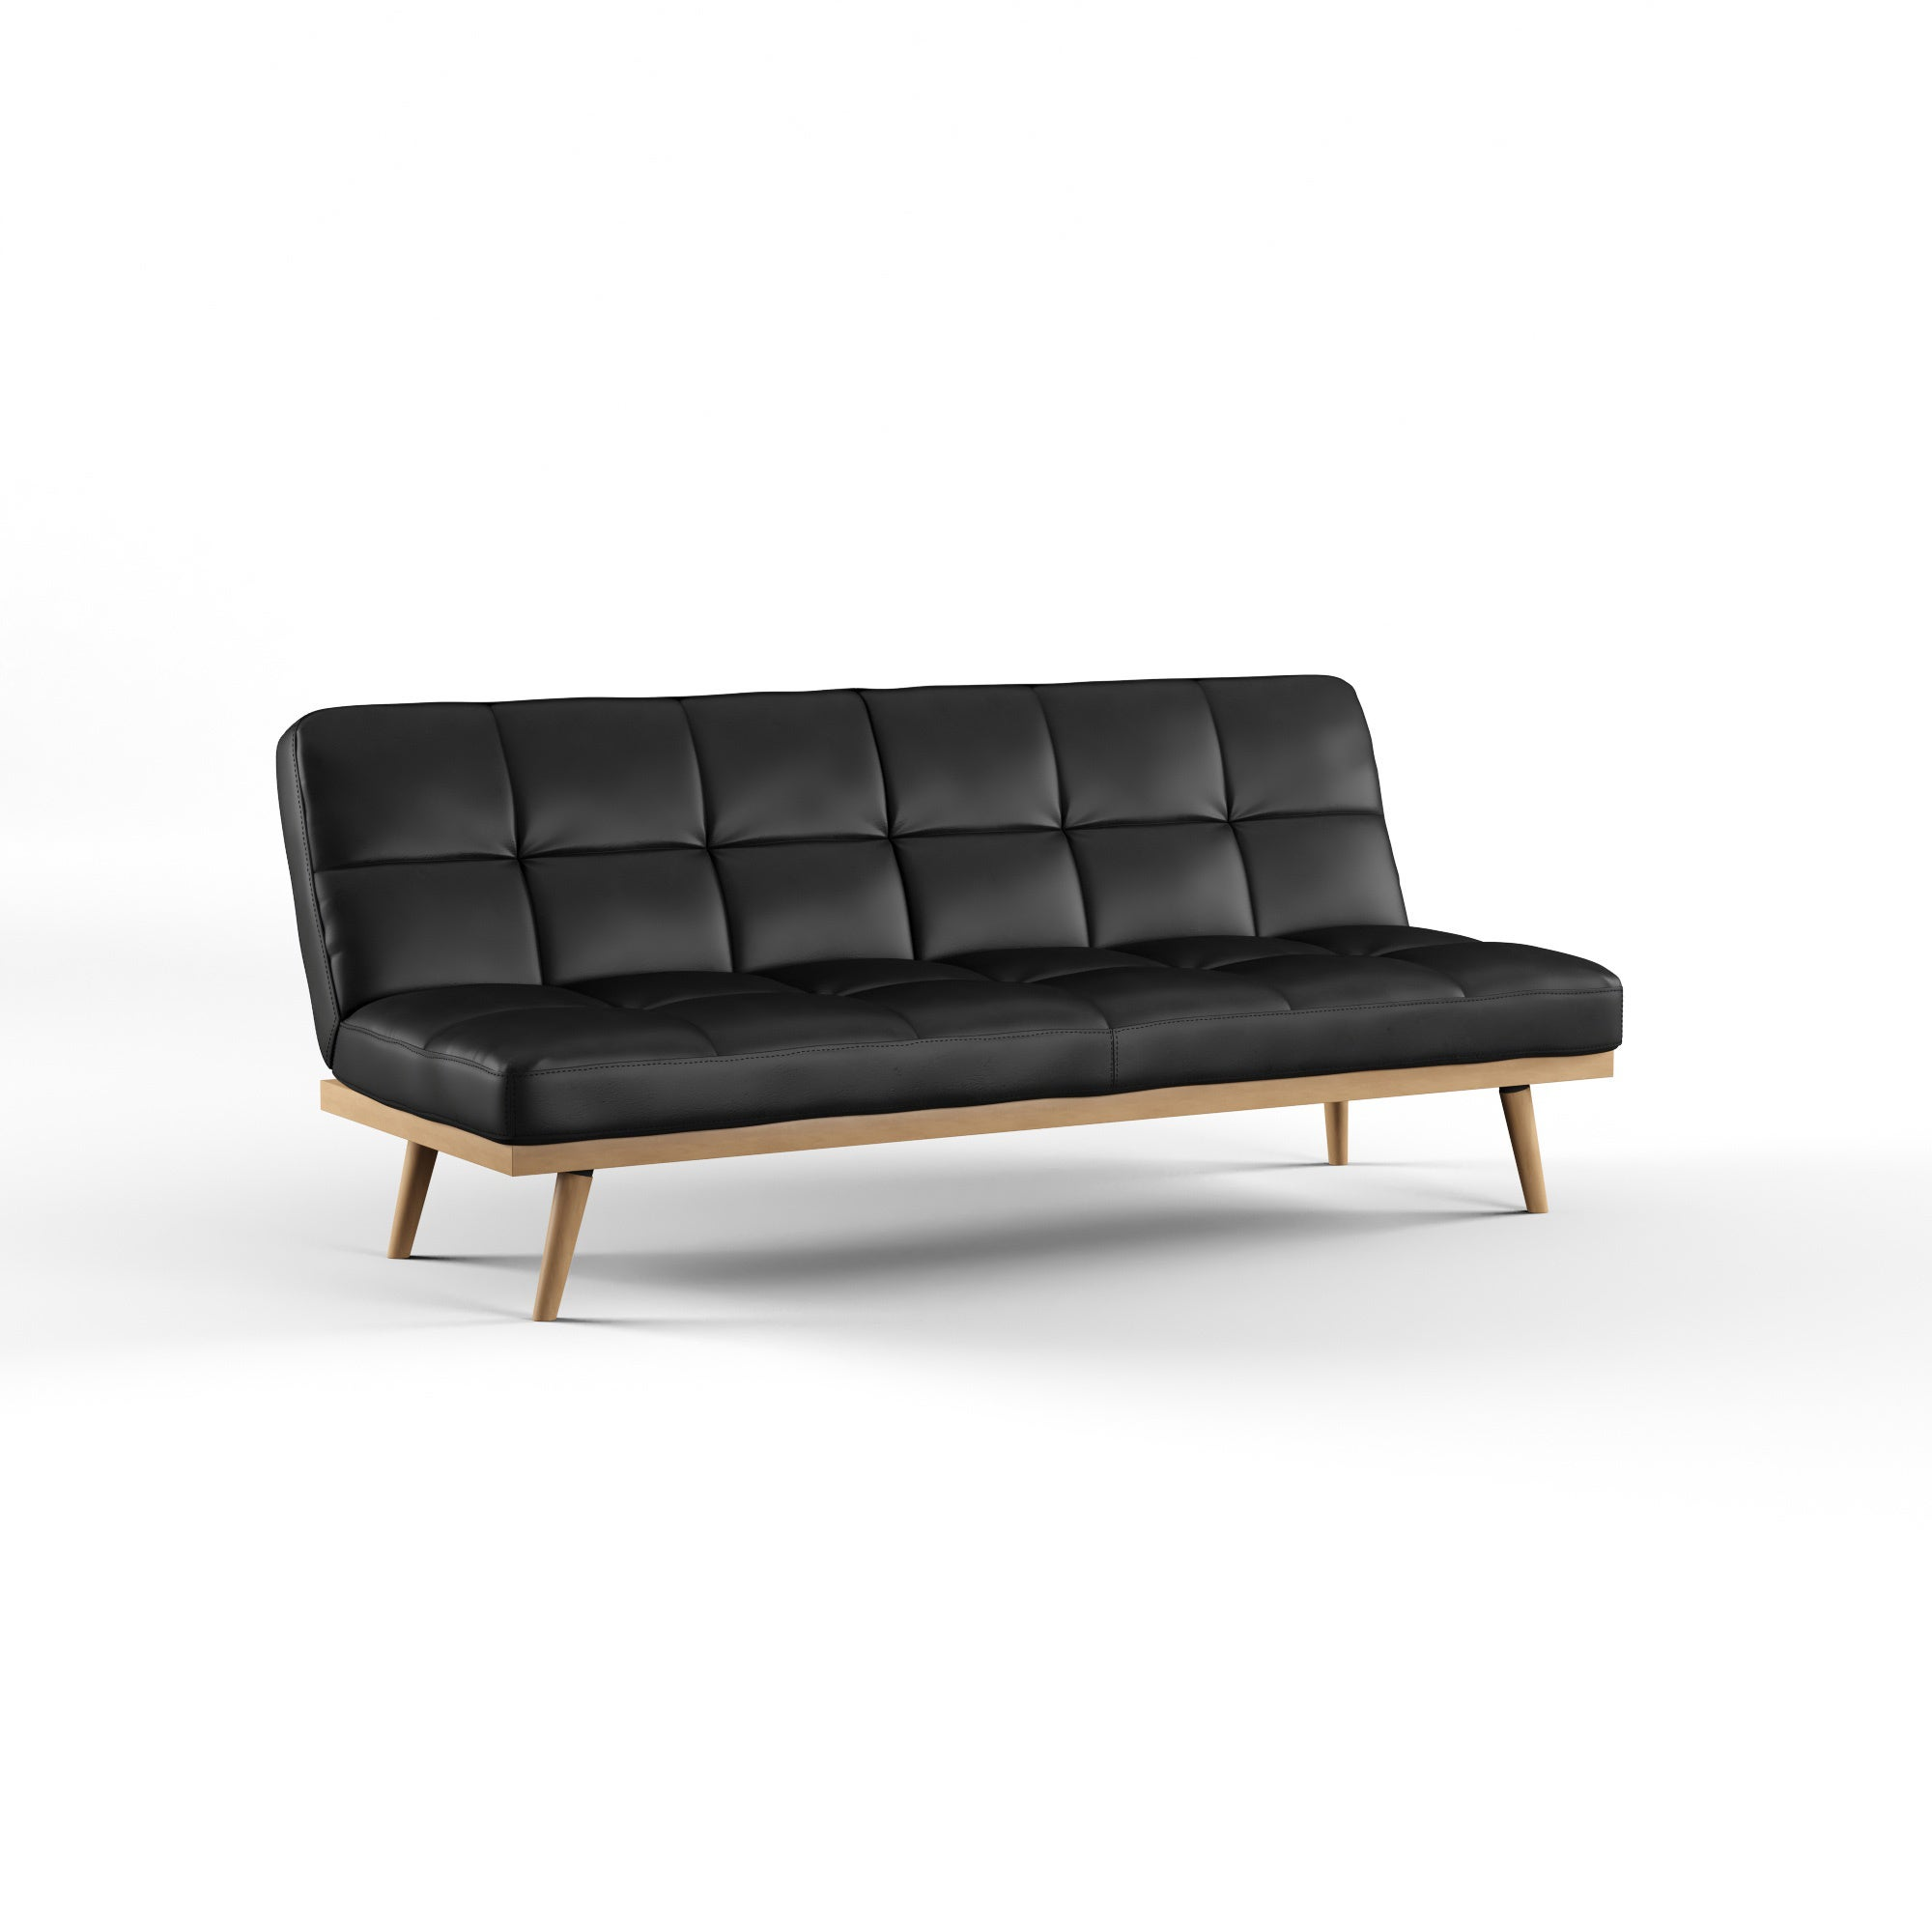 sofa leather furniture black sofas couch single bed ikea exquisite on double futon